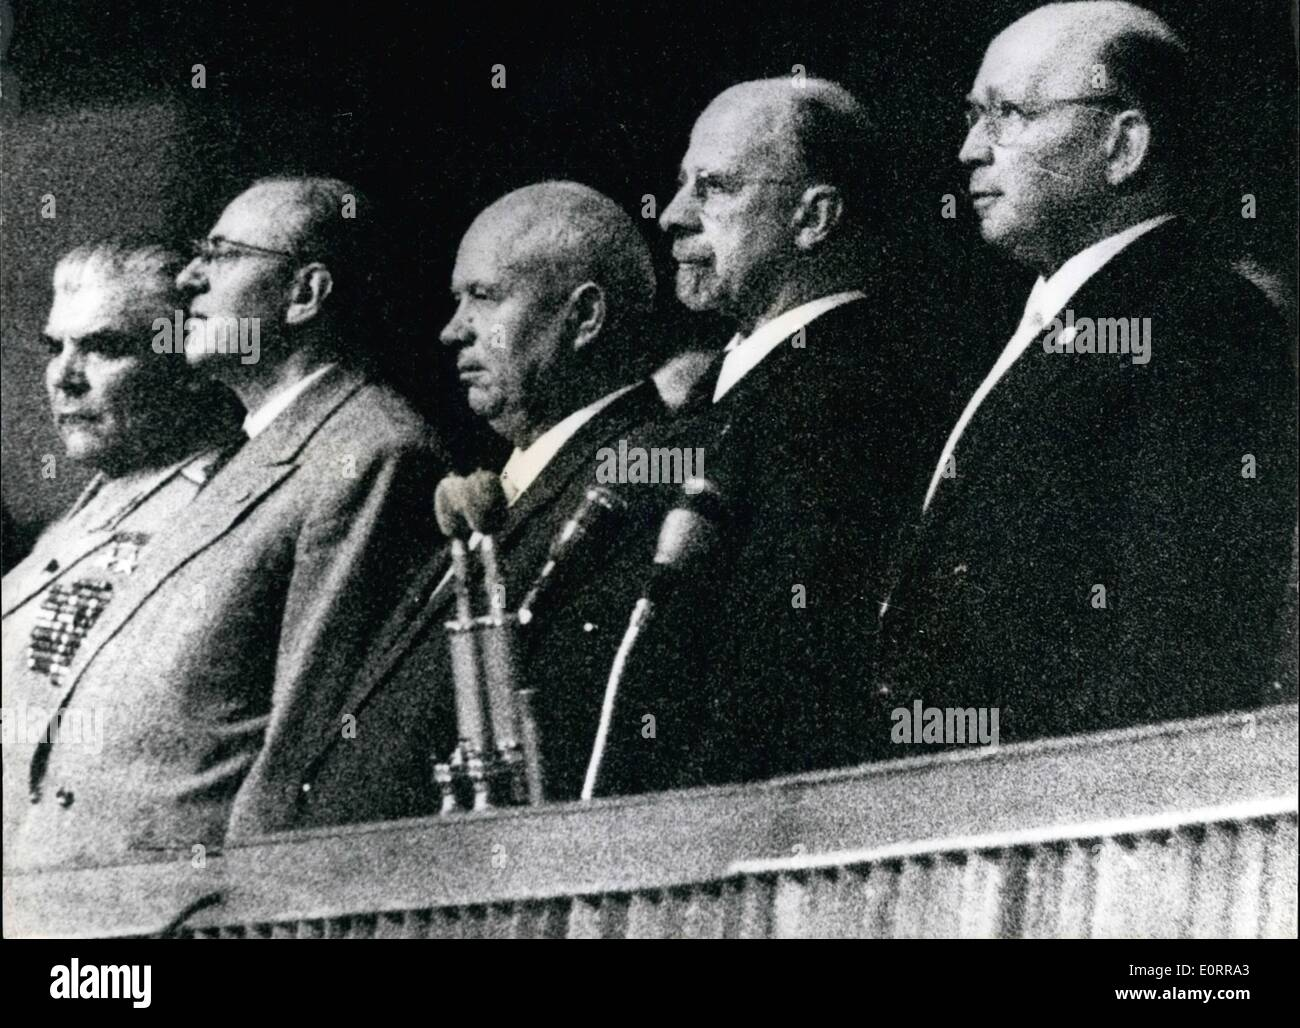 May 05, 1960 - Mr. Khruschev in his speech in eat Berlin last Friday said that the present stuation in Berlin would have to be maintained until another Summit Conference. He said that Russia would ''Do nothing to worsen international situation''- and bring back the cold war. In fact he said that his country woul do everything to achieve an improvement in international relations. Photo Shows: Mr - Stock Image